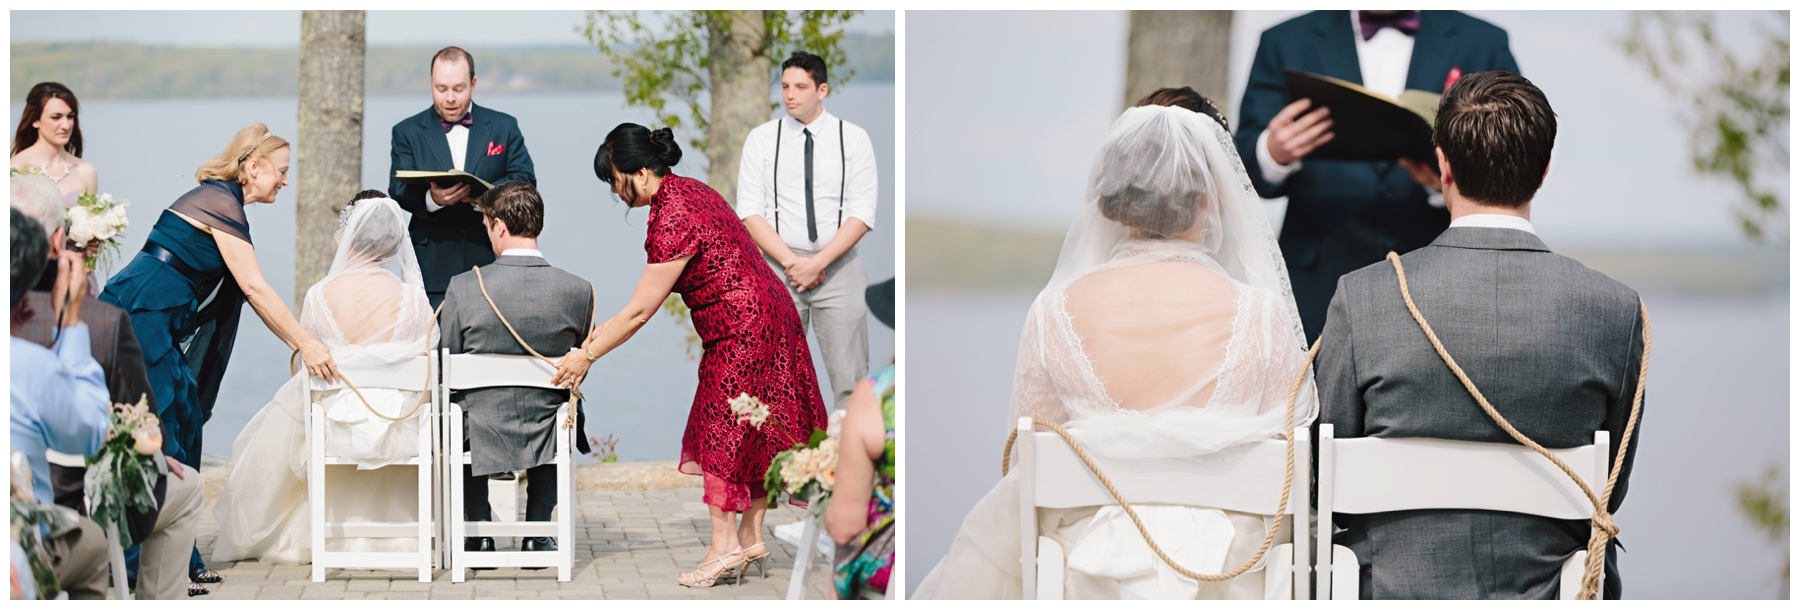 MaineWeddingPhotographer_FrenchsPoint_StocktonSprings_ocean_coast_NewEngland-035